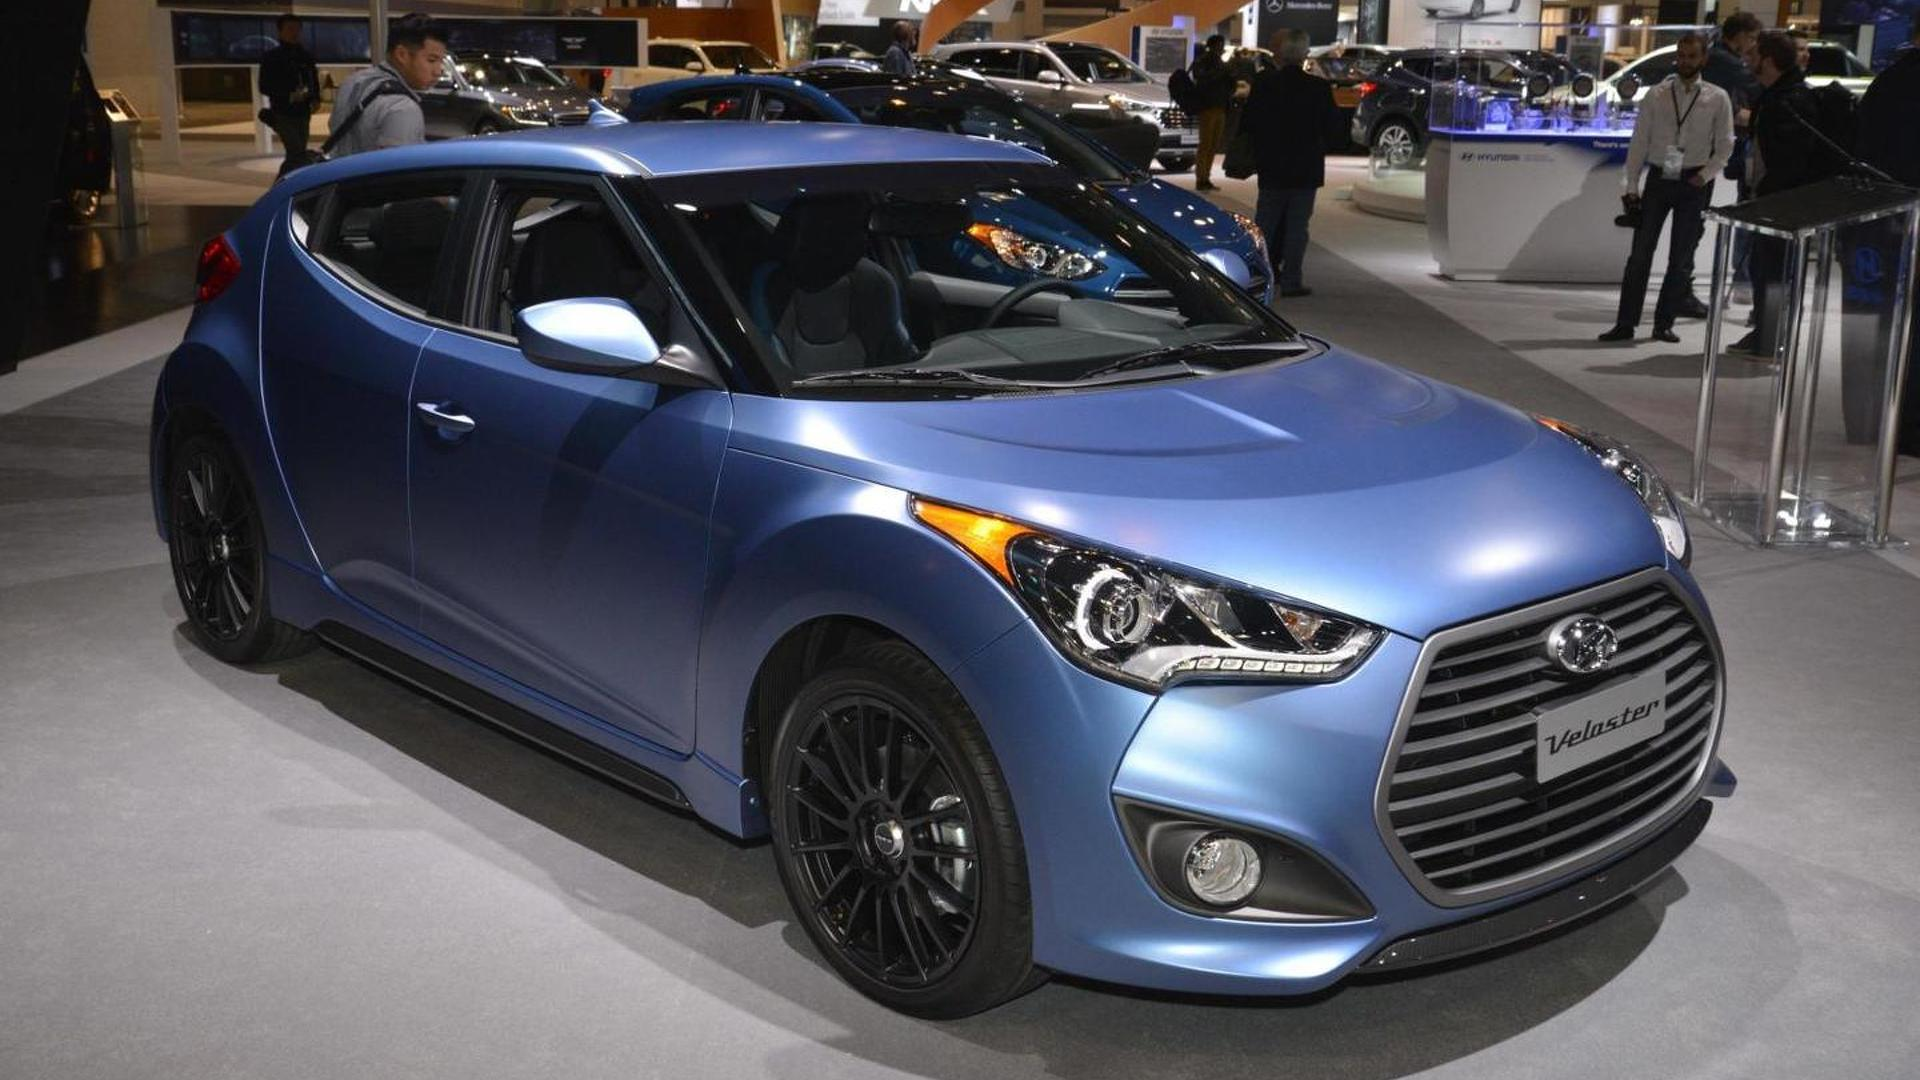 spec veloster photo some r amazing information turbo gallery and hyundai